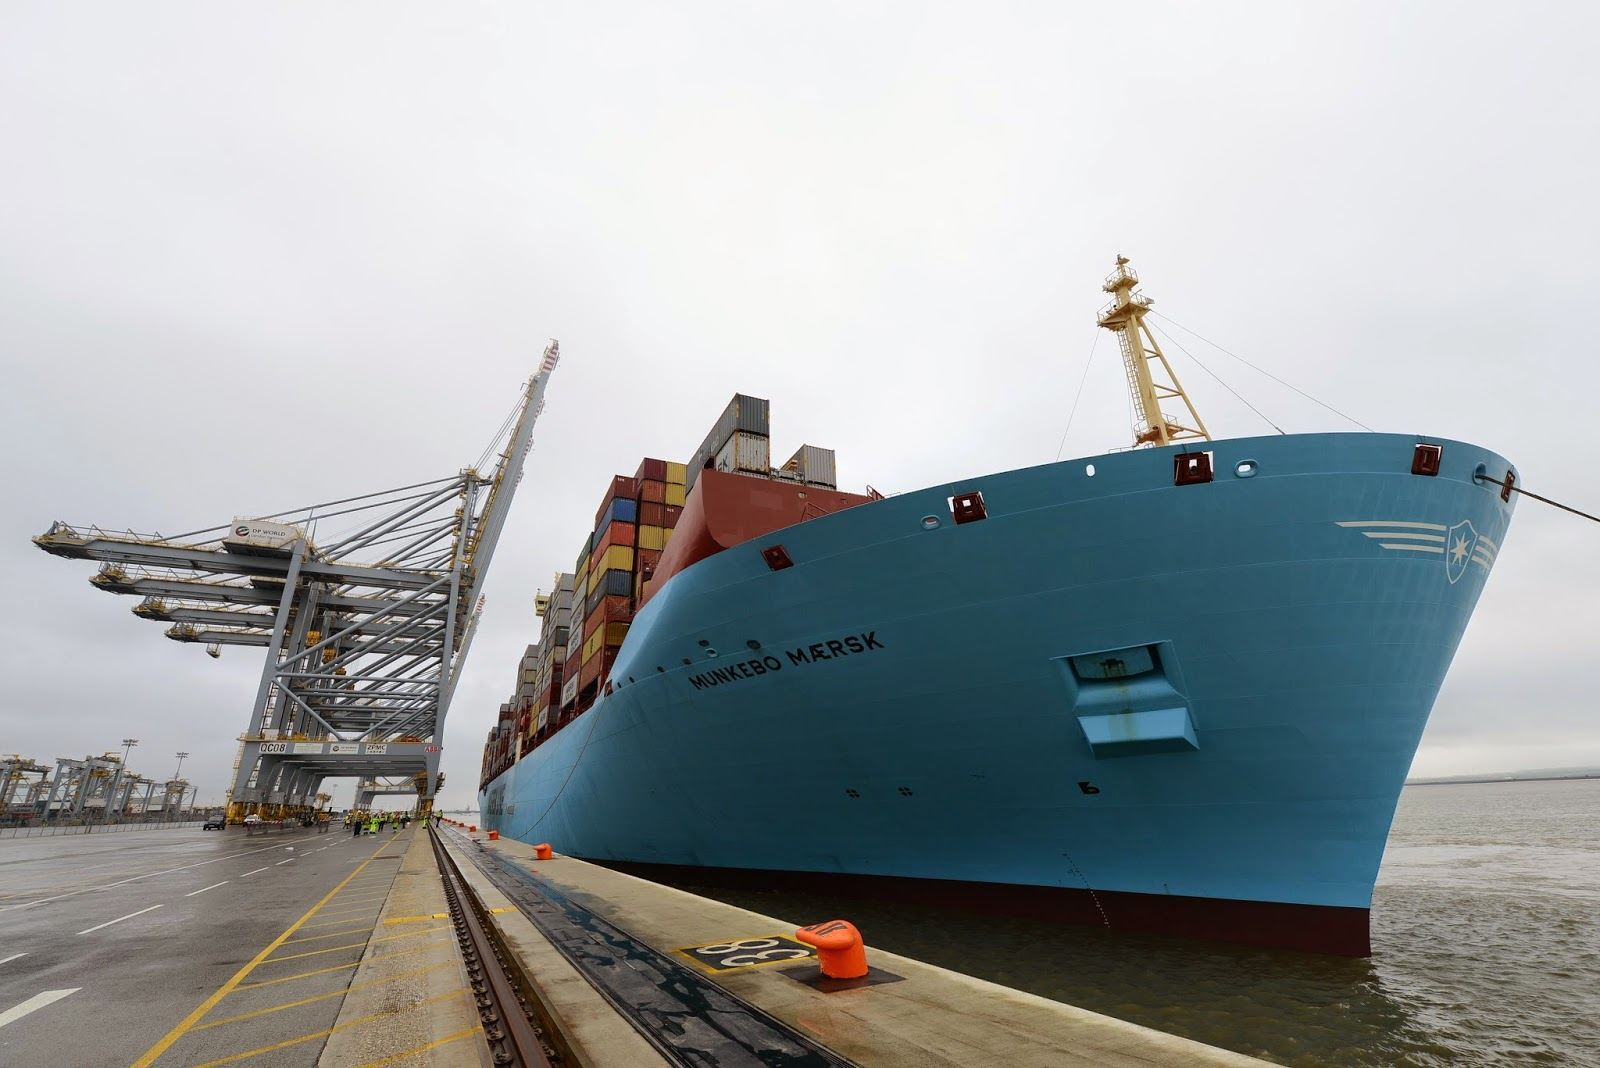 Maersk triple-E vessel breaks record for largest ship to sail on Thames